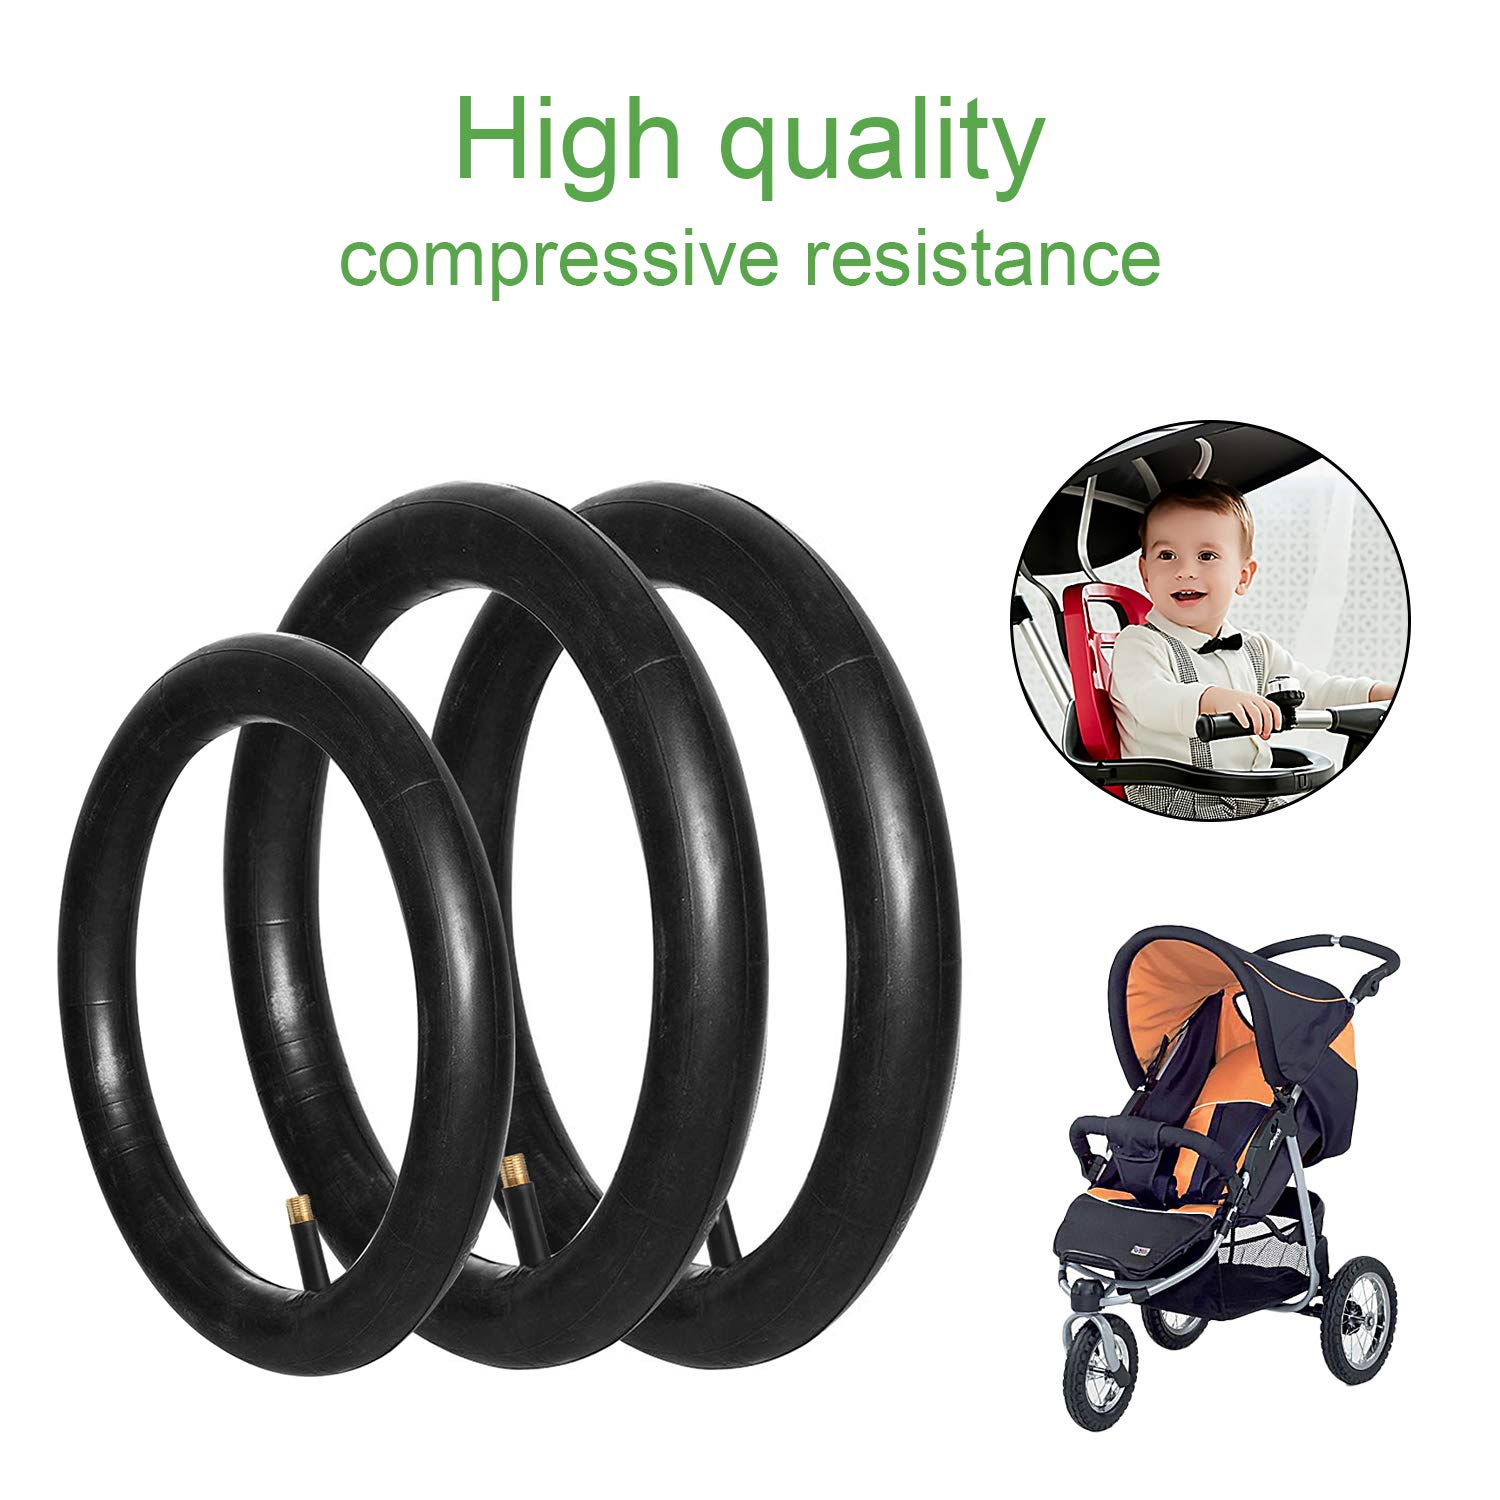 2 Pieces 16 x 1.75//2.15 Back 1 Piece 12.5 x 1.75//2.15 Front Wheel Replacement Inner Tubes Comfitable for BoB Stroller Tire Tube Revolution SE//Pro//Flex//SU//Ironman